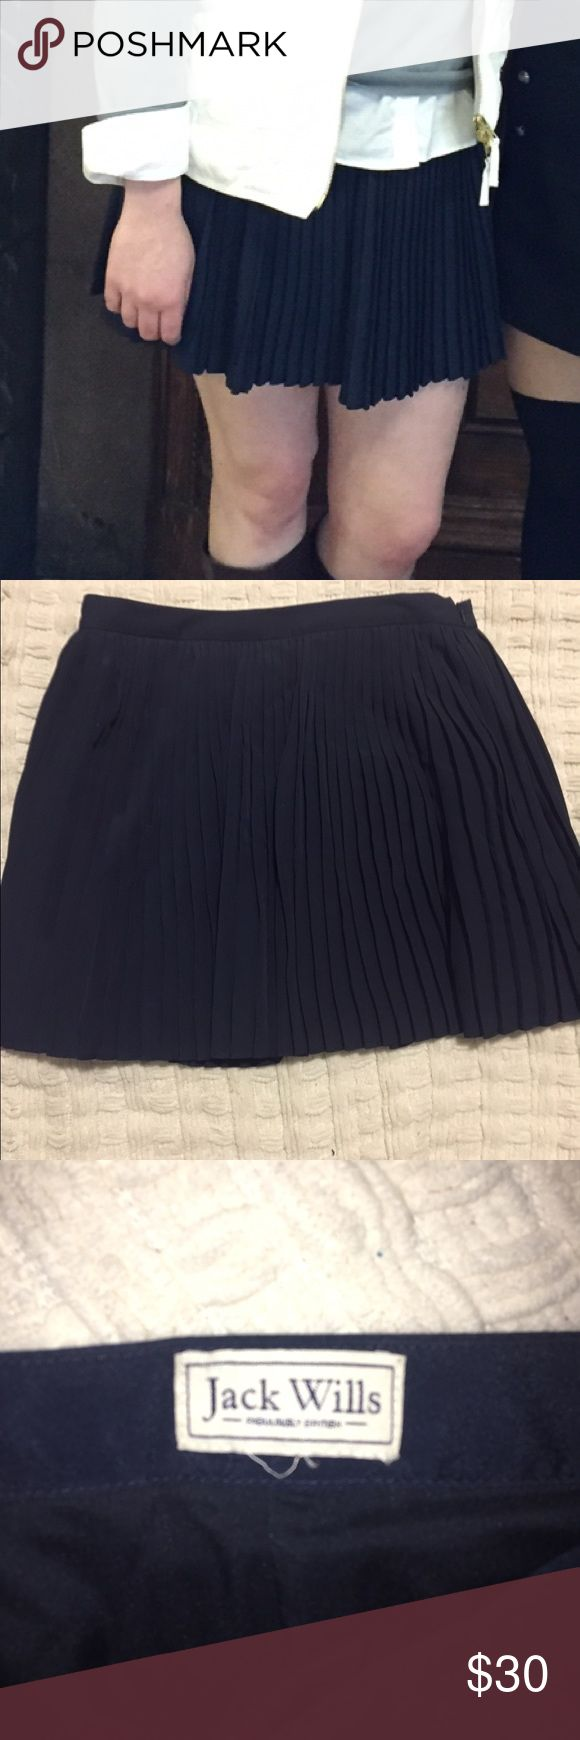 Jack Wills Pleated Mini Skirt Navy Blue, flair, side zip waist, very lightly worn. Jack Wills Skirts Mini